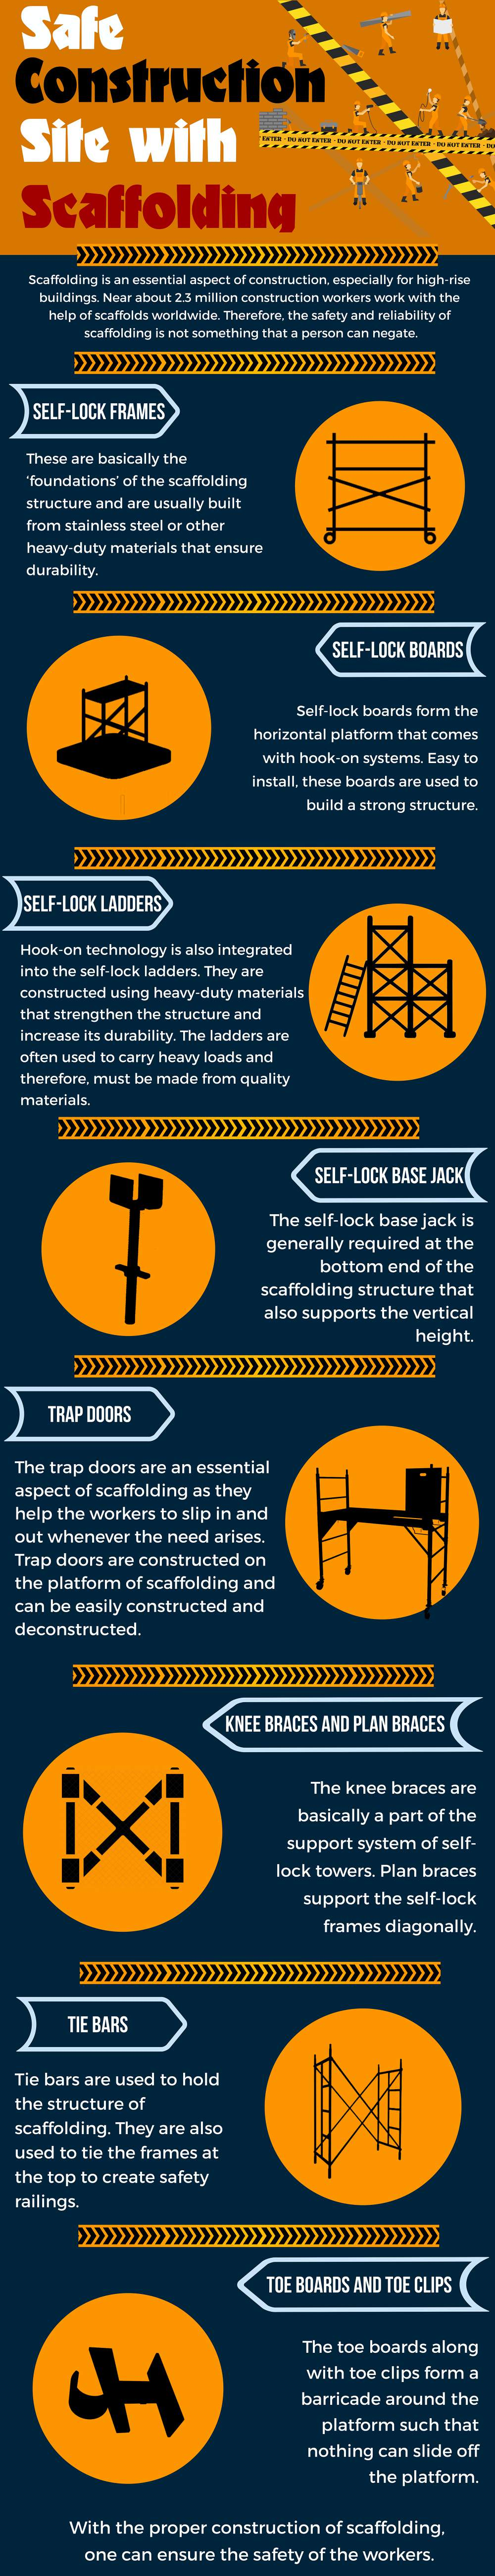 Ways to Create a Safe Construction Site